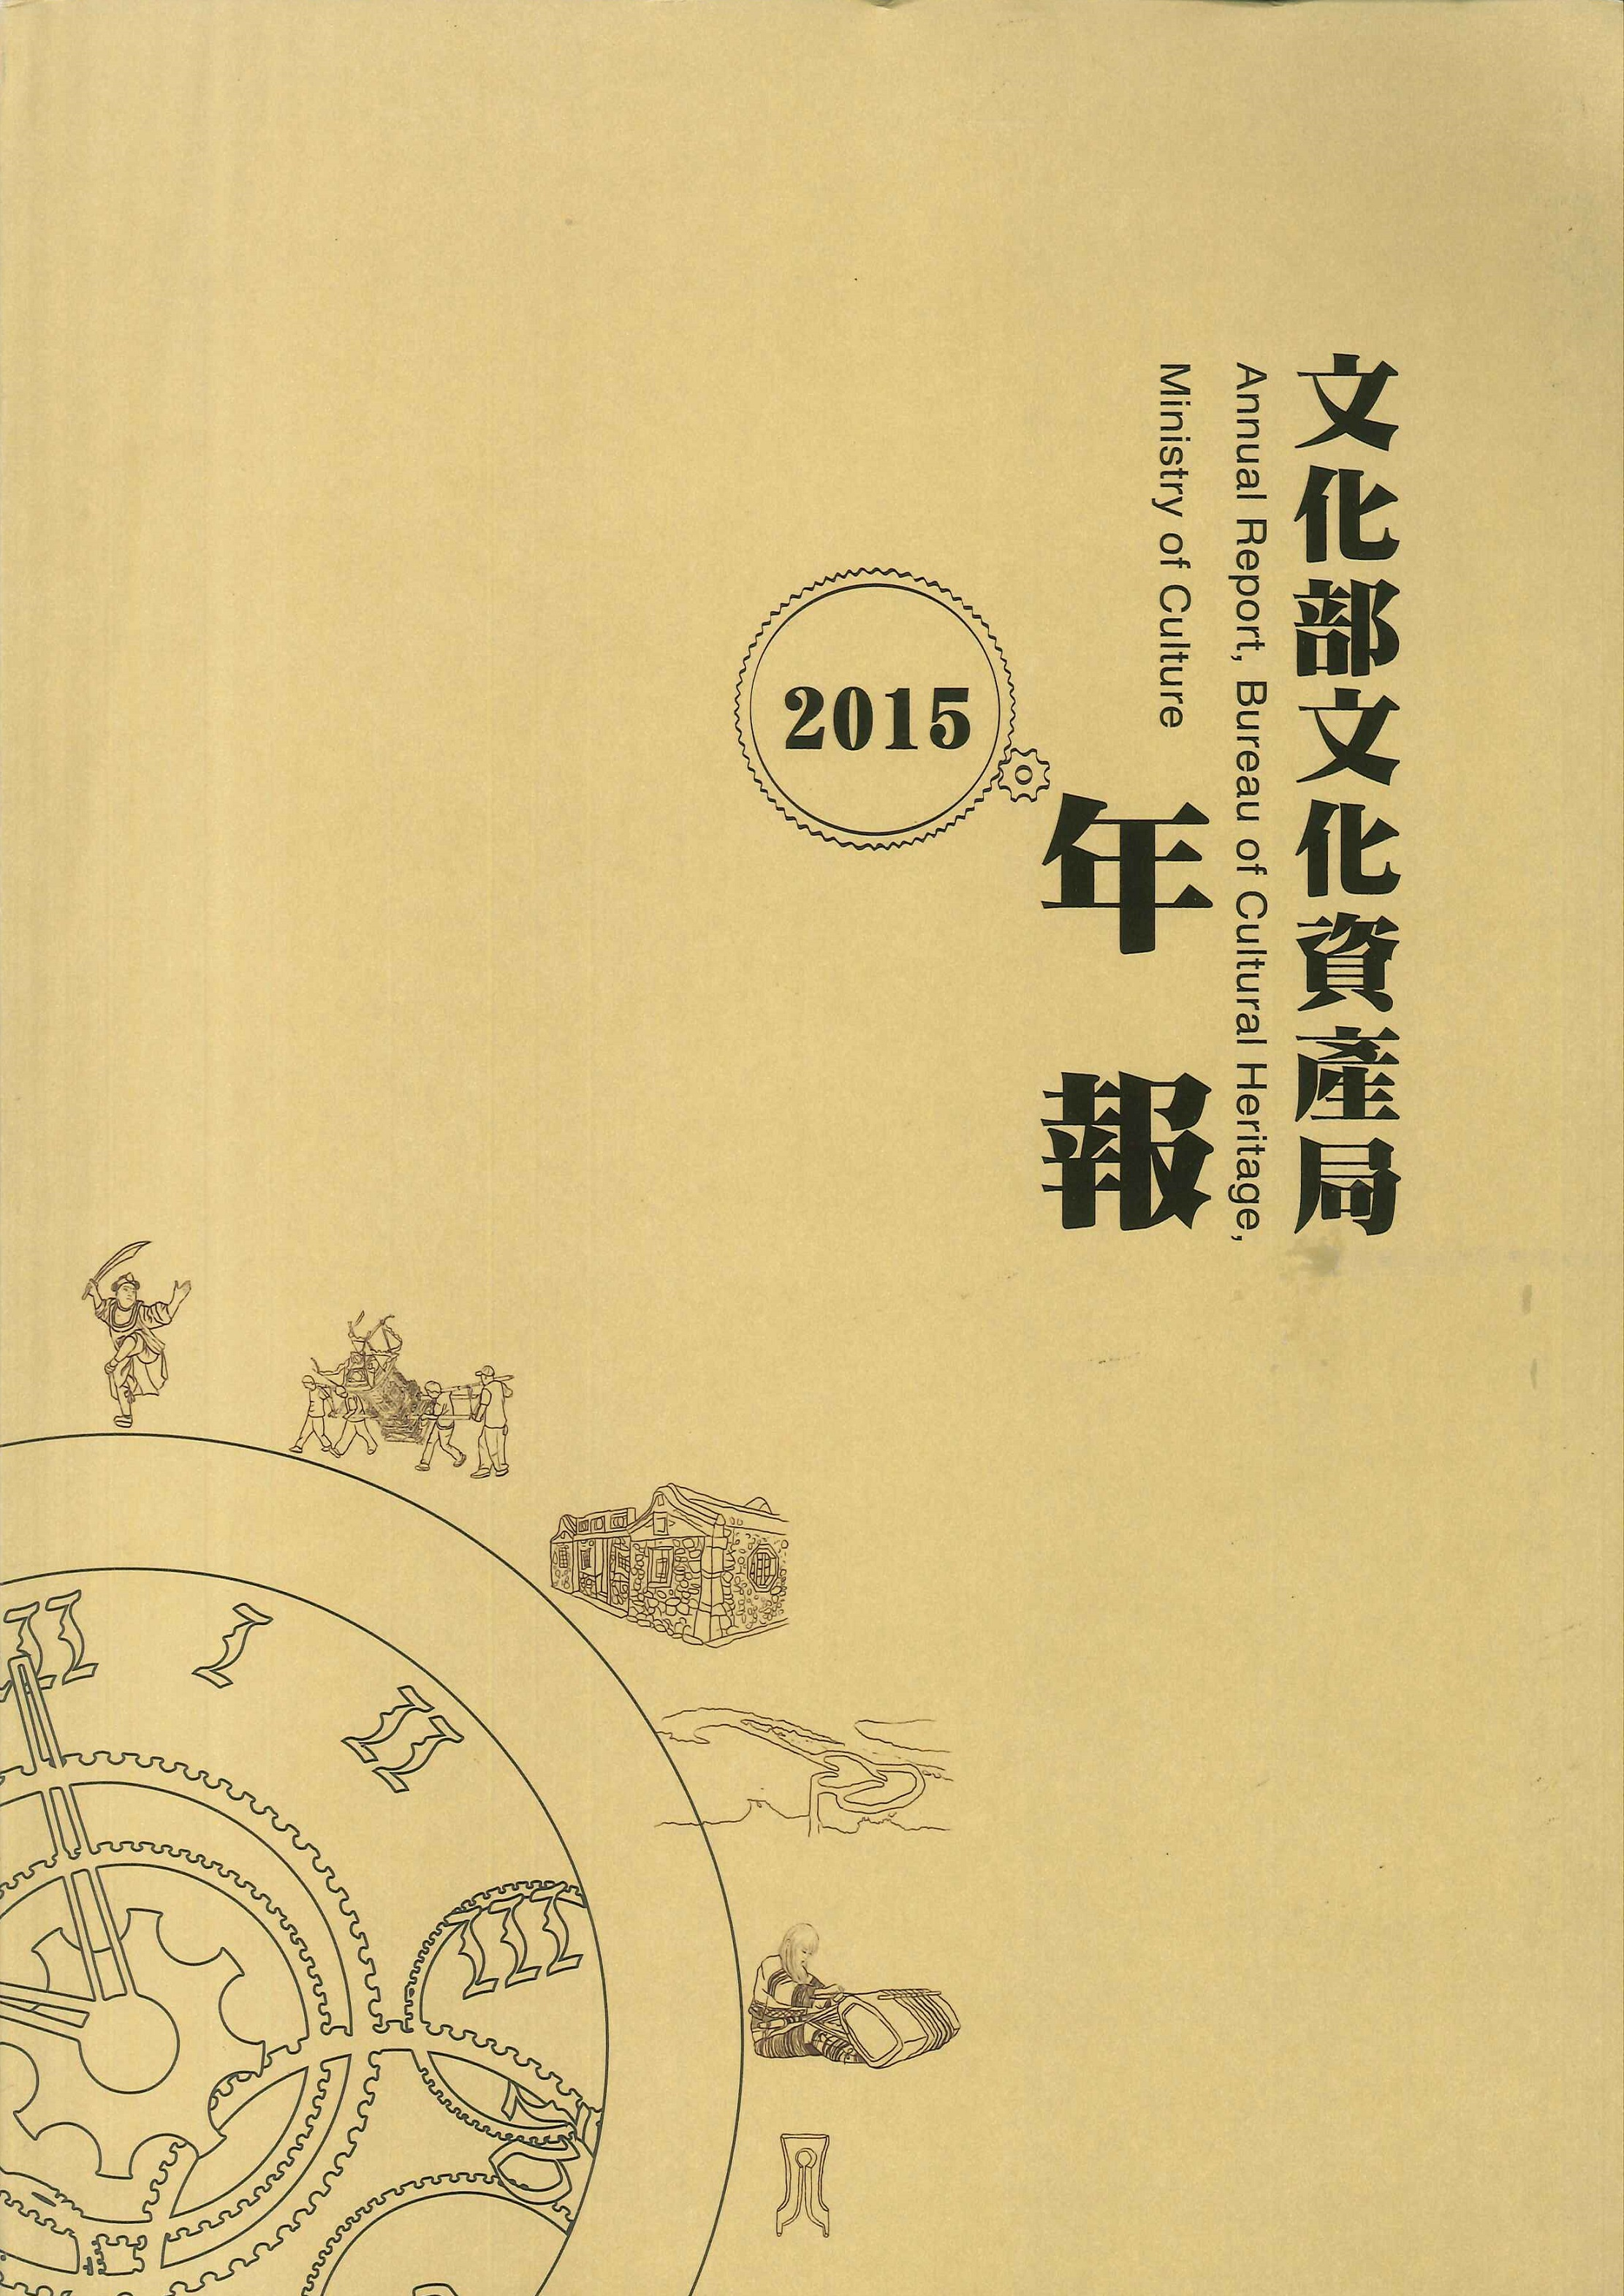 文化部文化資產局年報=Annual report, Bureau of Cultural Heritage, Ministry of Culture